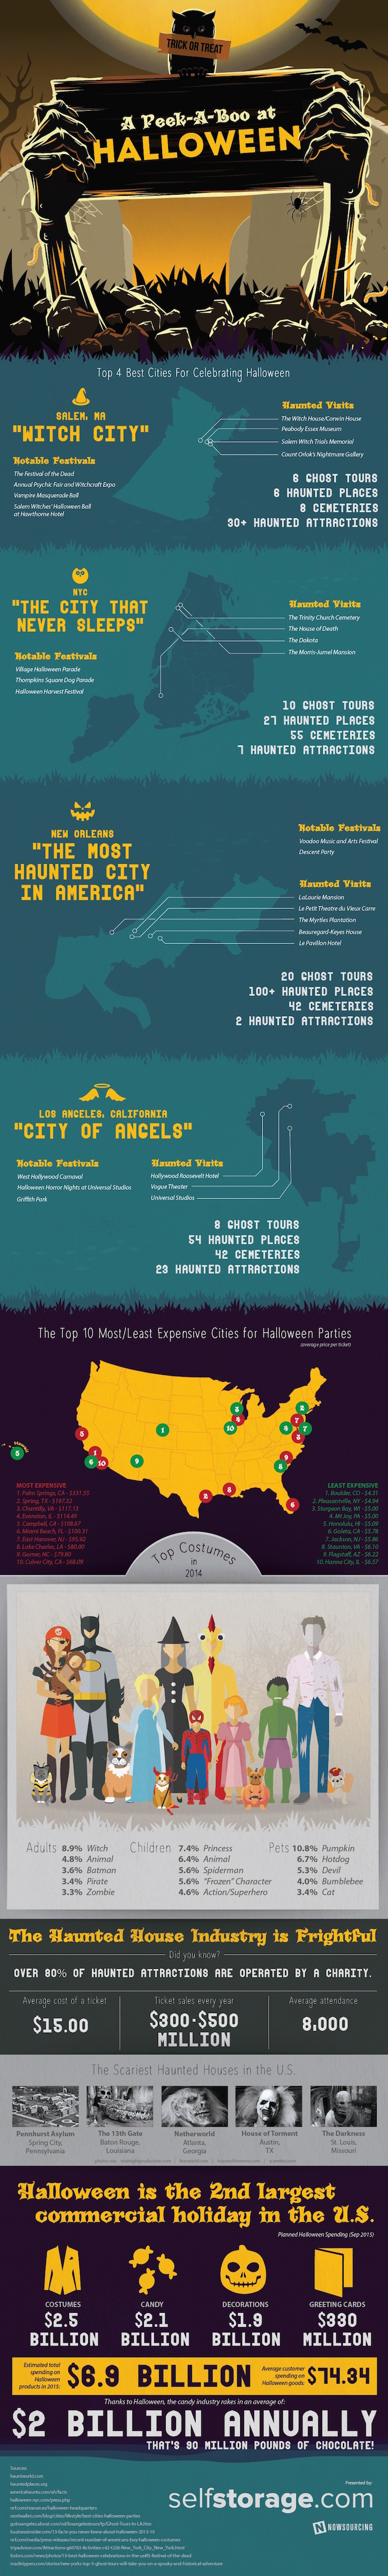 Do You Know Everything About Halloween?